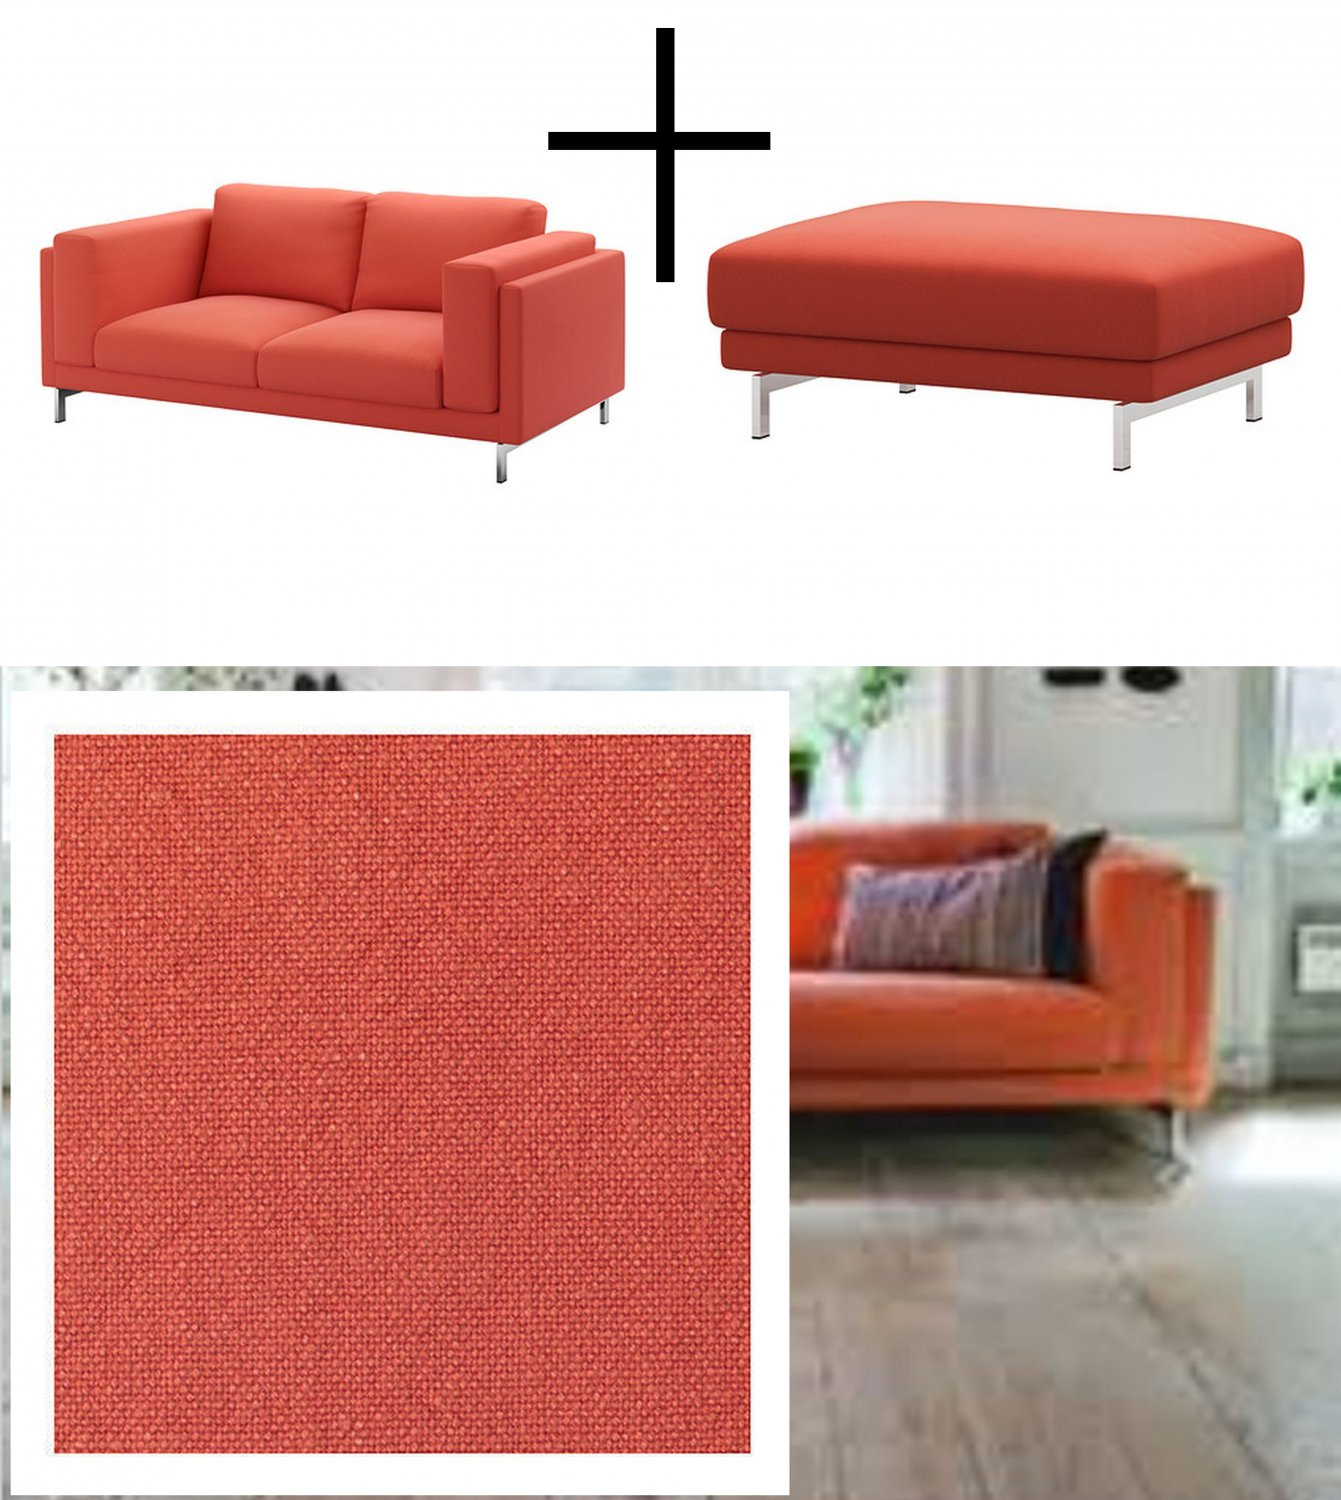 Ikea Nockeby Loveseat And Footstool Slipcovers 2 Seat Sofa Ottoman Covers Risane Orange Linen Blend